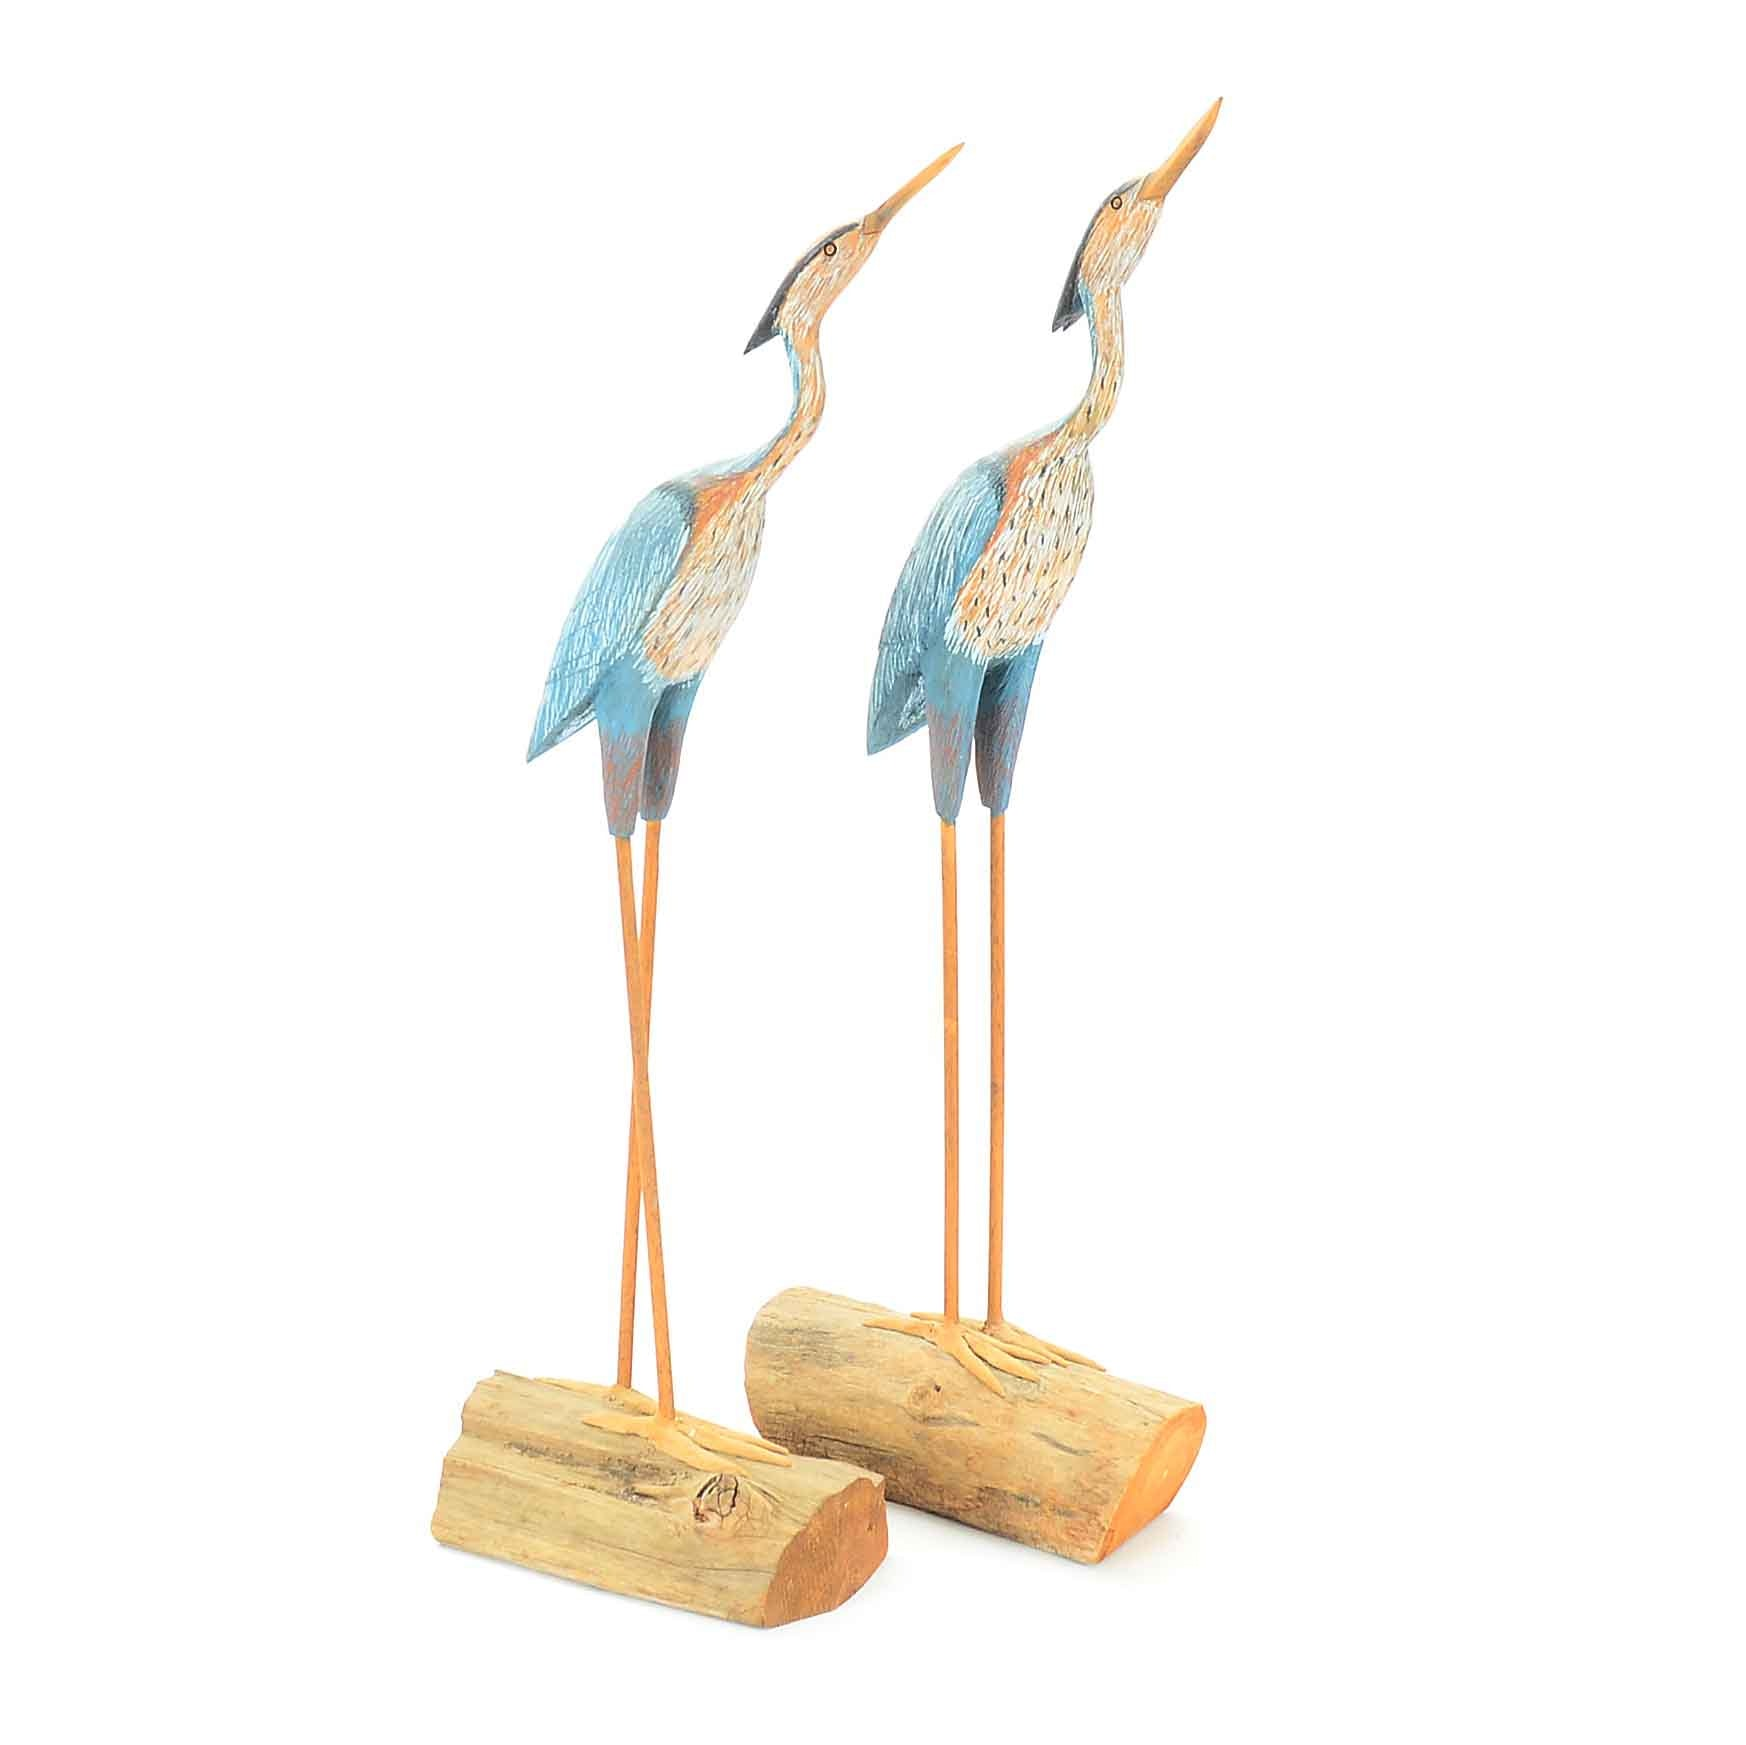 Pair of Painted Hand-crafted Wood Birds